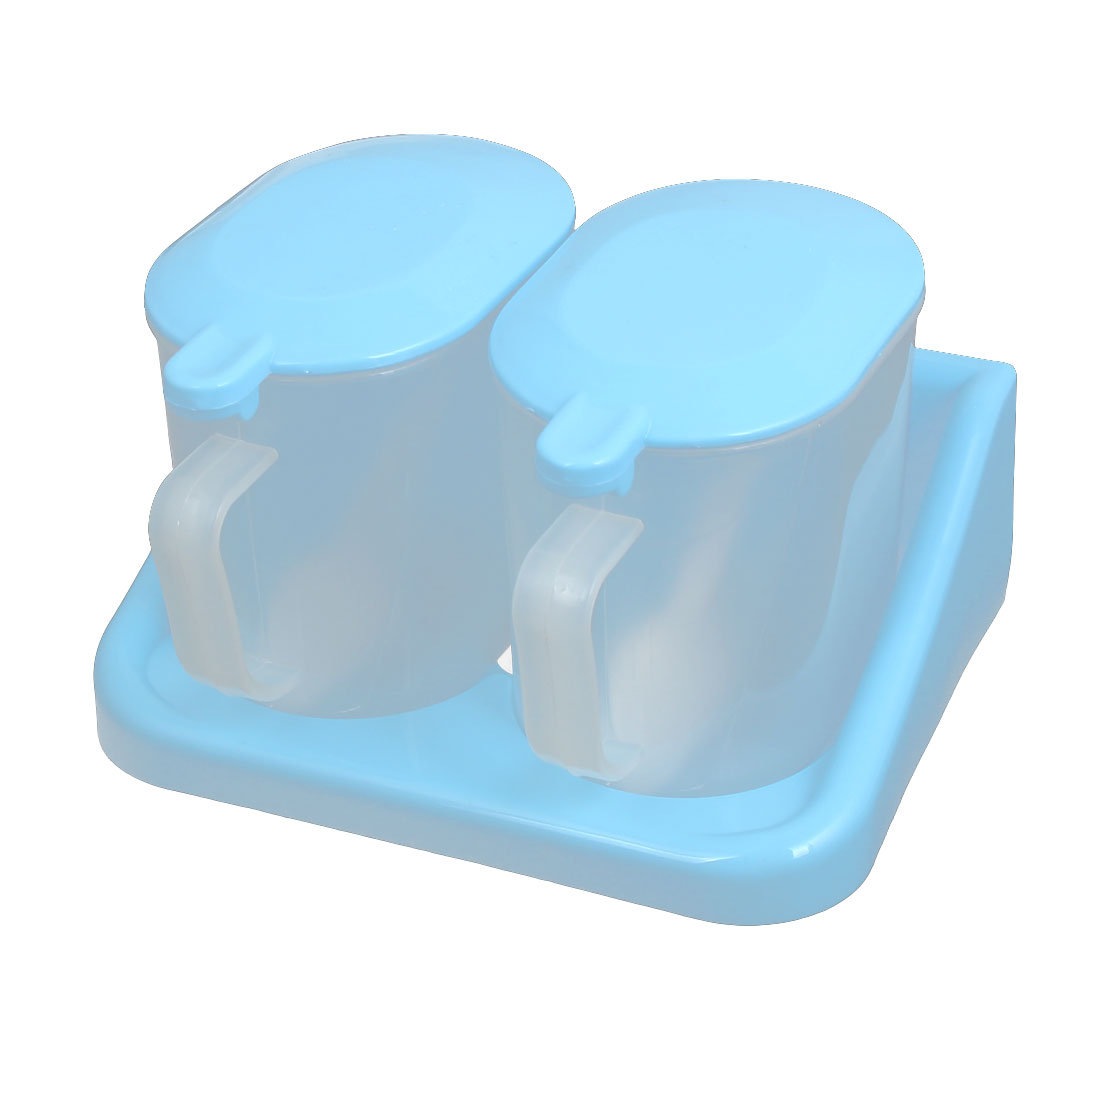 Plastic Oval Shape 2 Compartments Condiment Holder Dispenser Tray Box Baby Blue